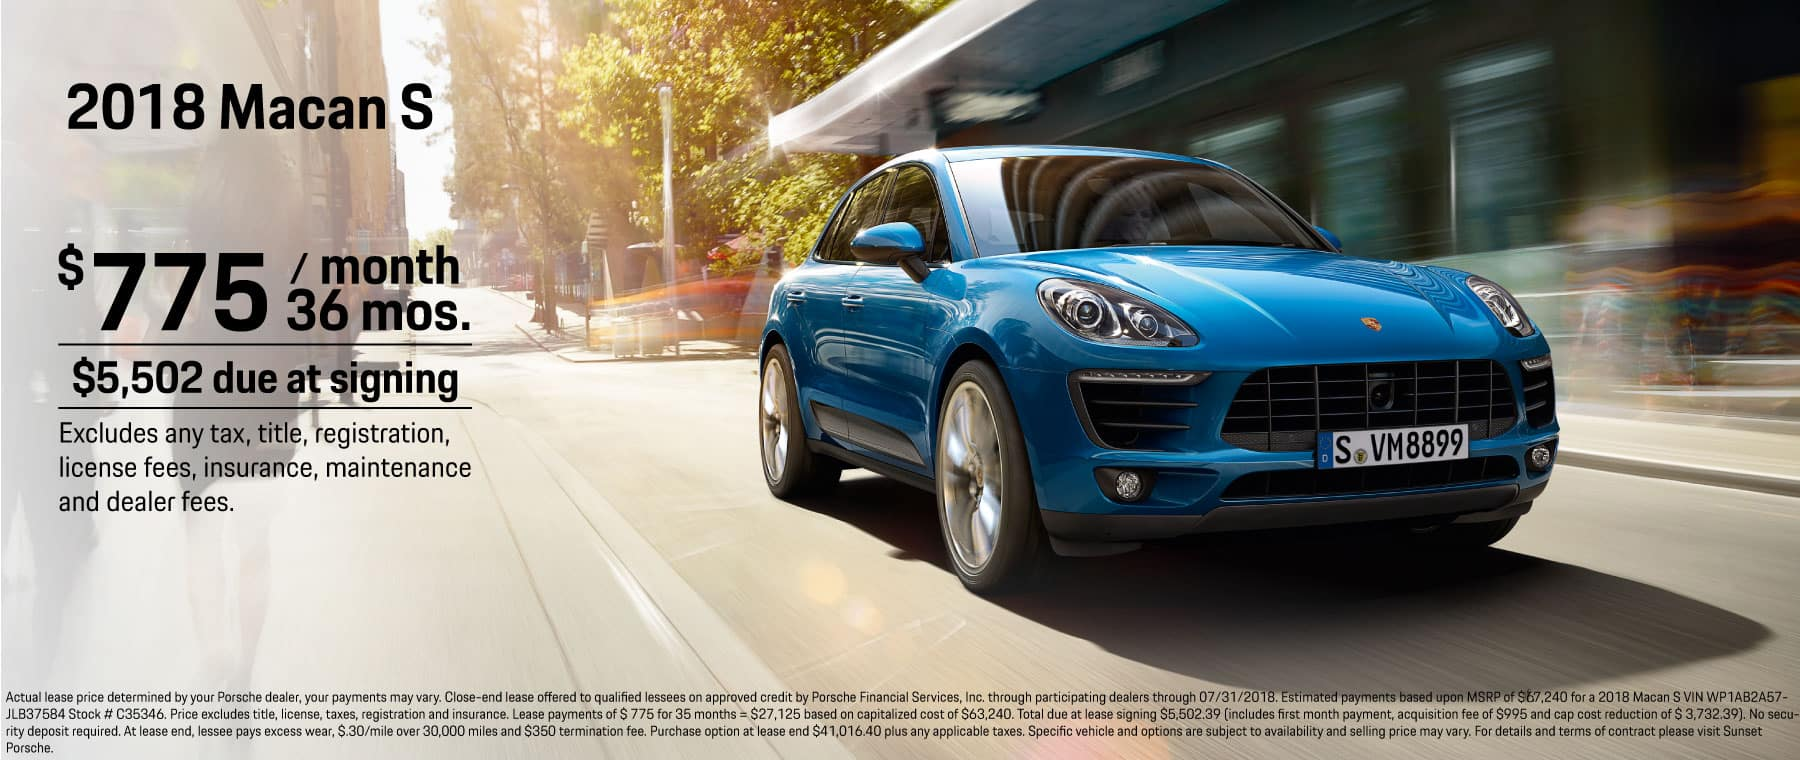 Macan-S-July-Lease1